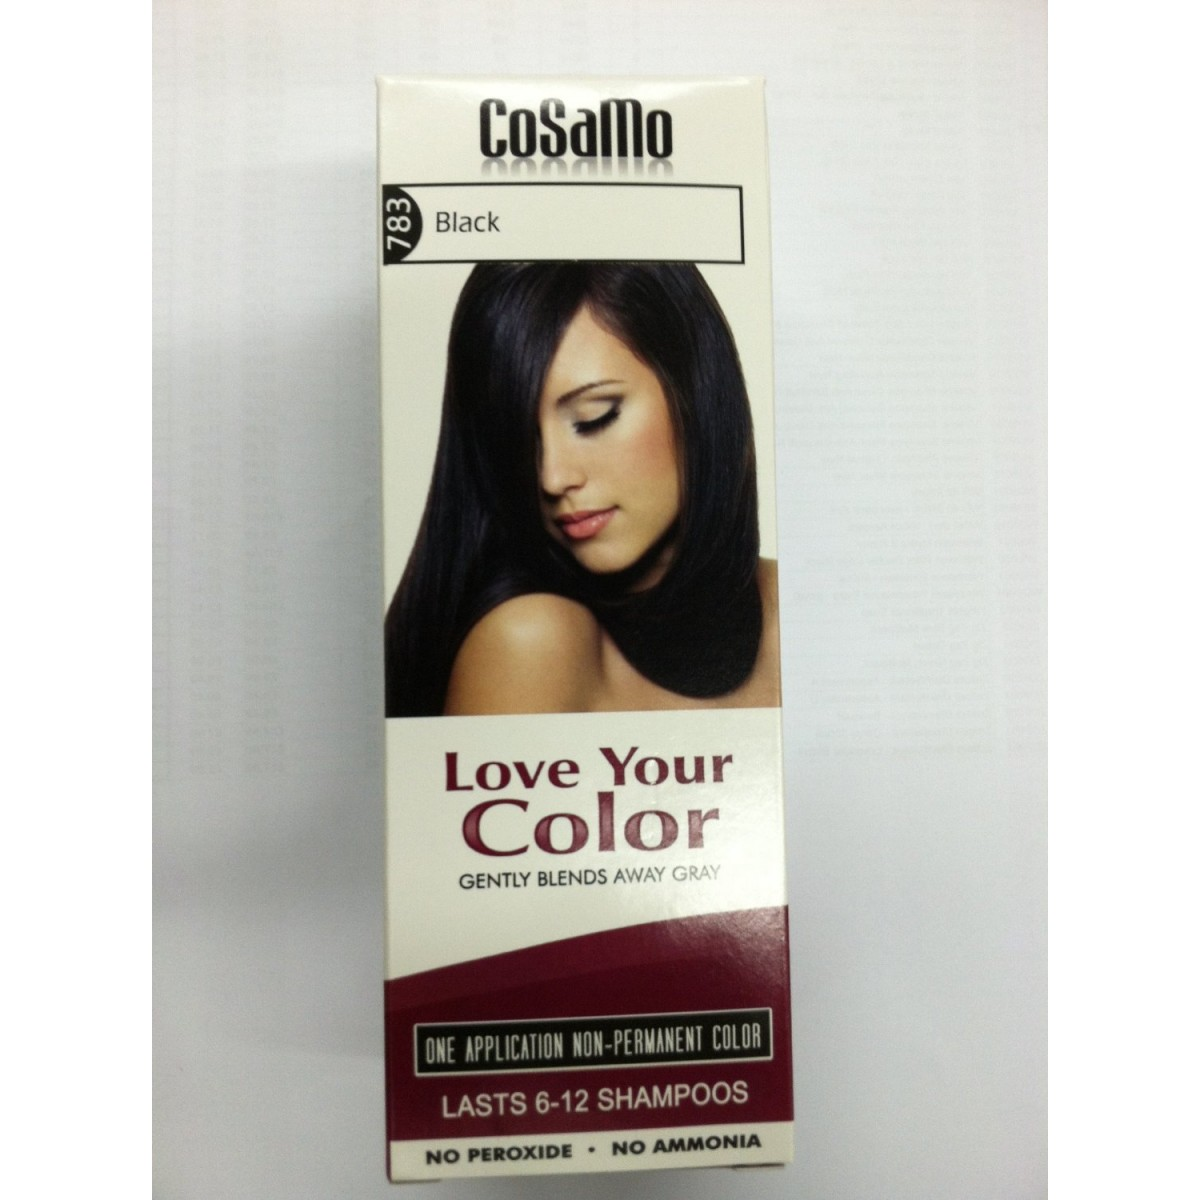 Cosamo Love Your Color Ammonia And Peroxide Free Hair Color 783